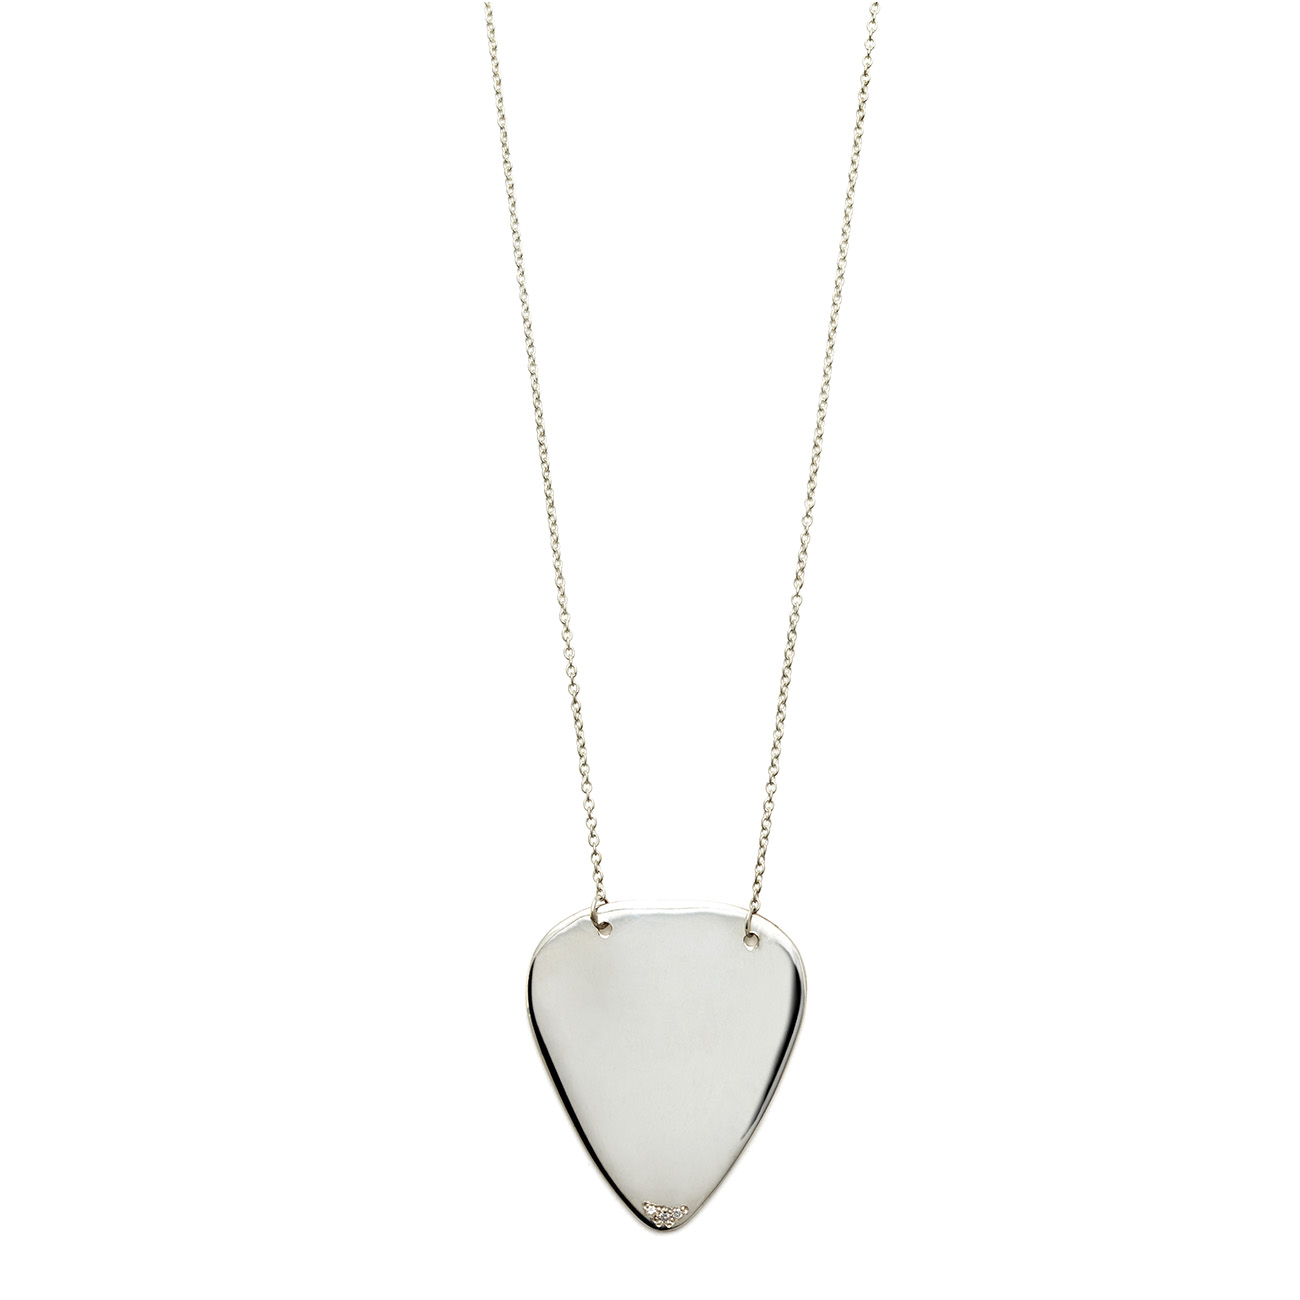 Sterling silver guitar pick necklace elisa solomon jewelry elisa solomon sterling silver guitar pick necklace mozeypictures Image collections